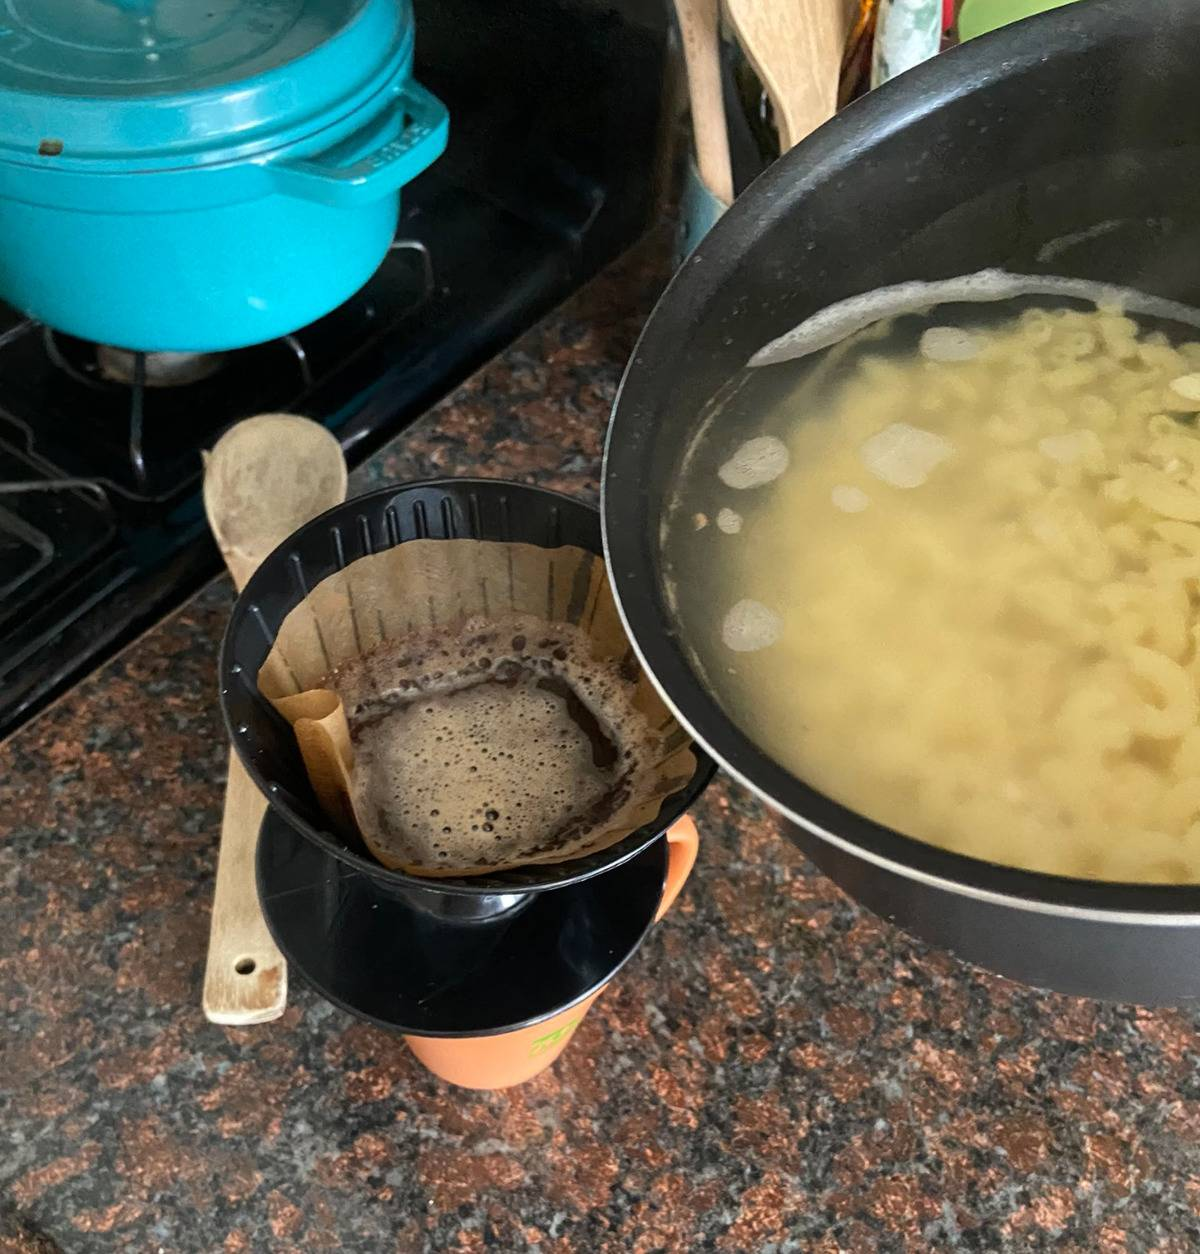 someone using pasta water to make coffee